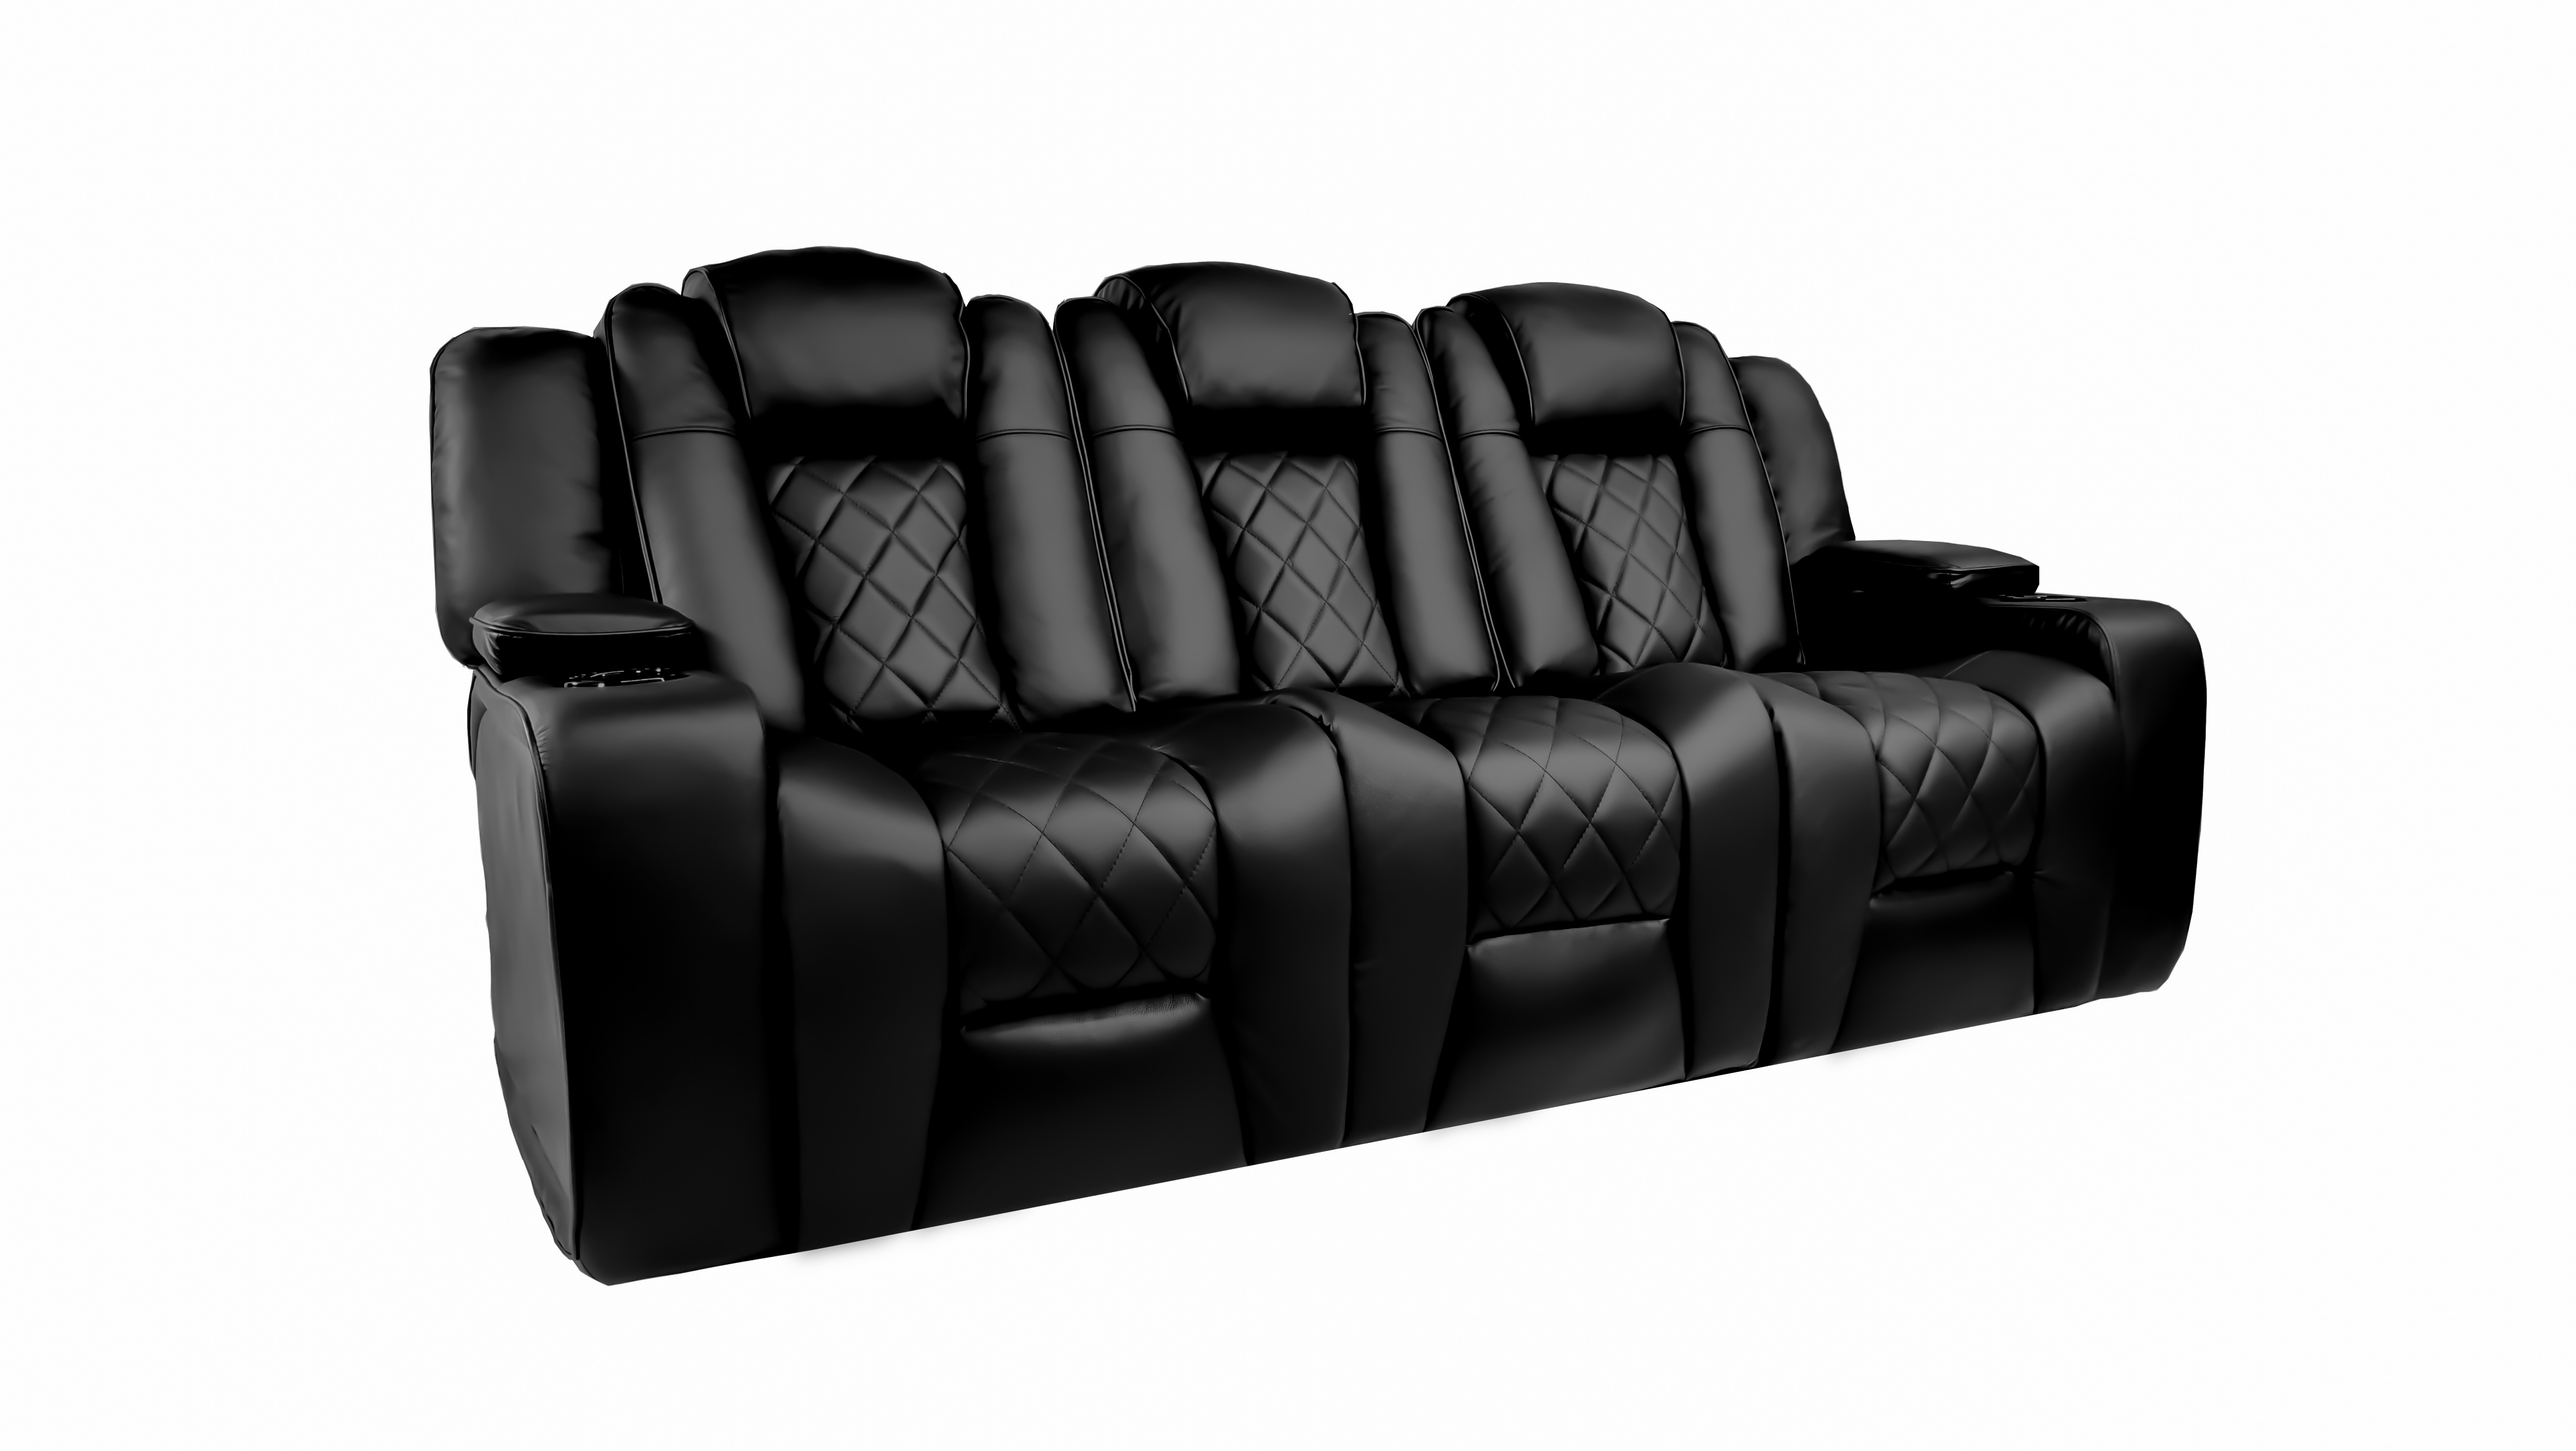 Oxford Leather Motorized Recliner